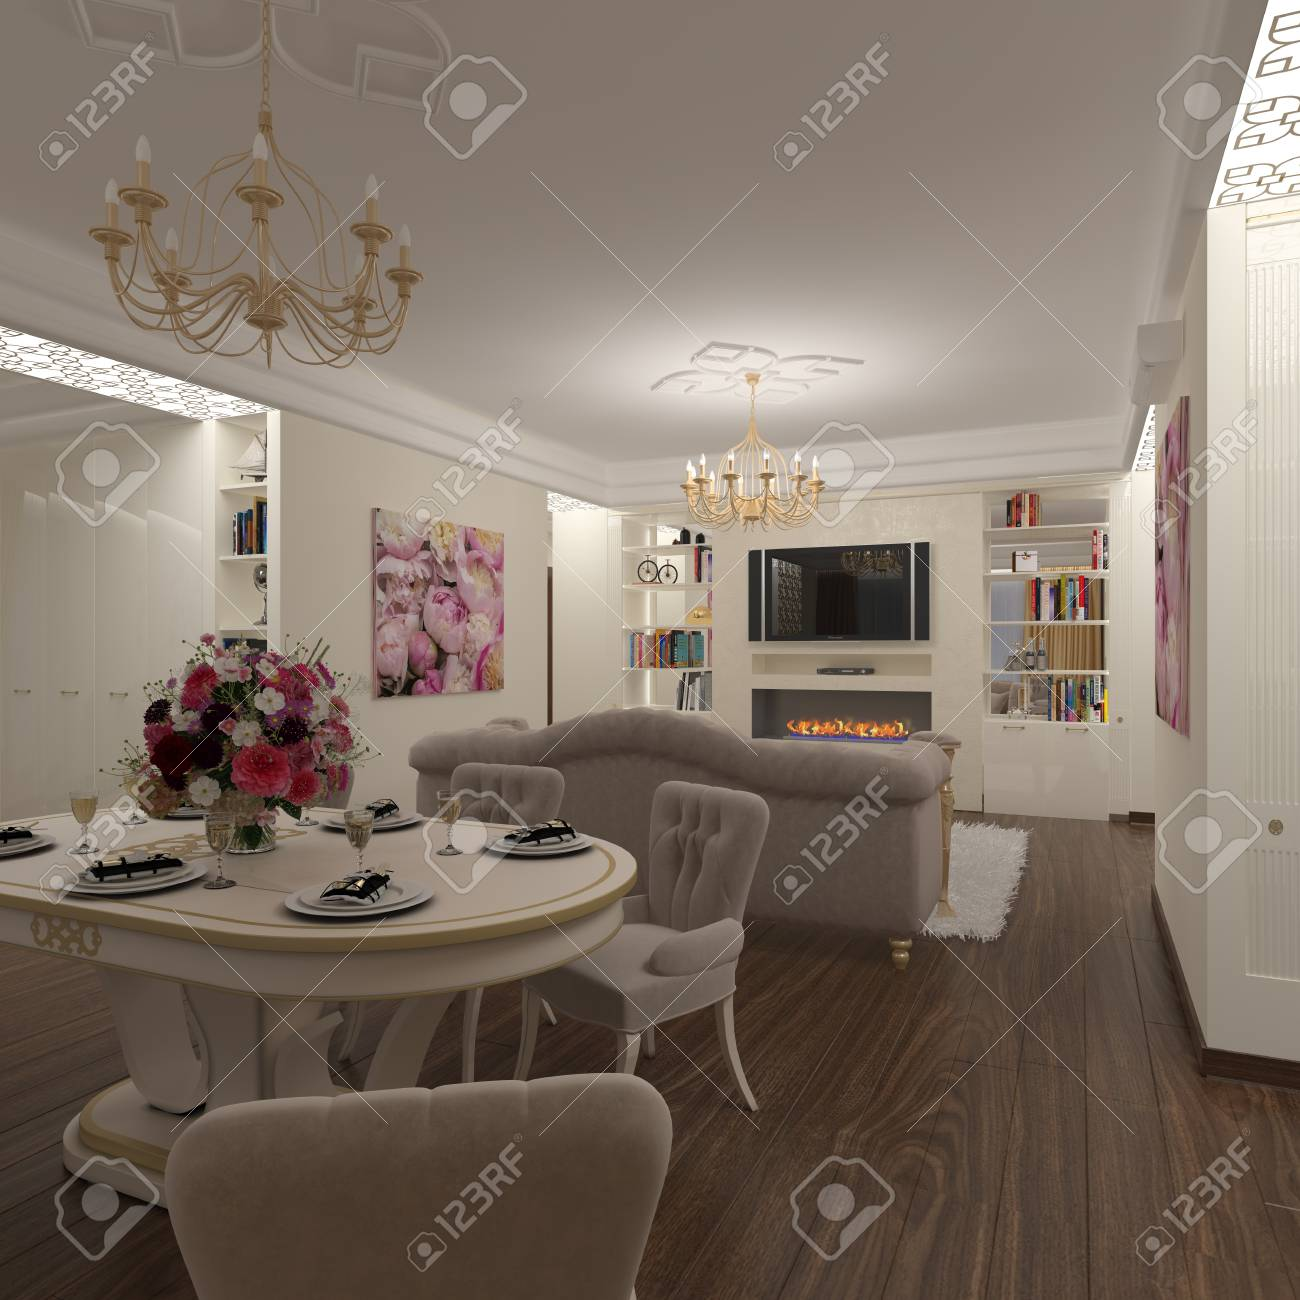 Render Interior Design Of The Living Room Dining Room In The Stock Photo Picture And Royalty Free Image Image 94999026